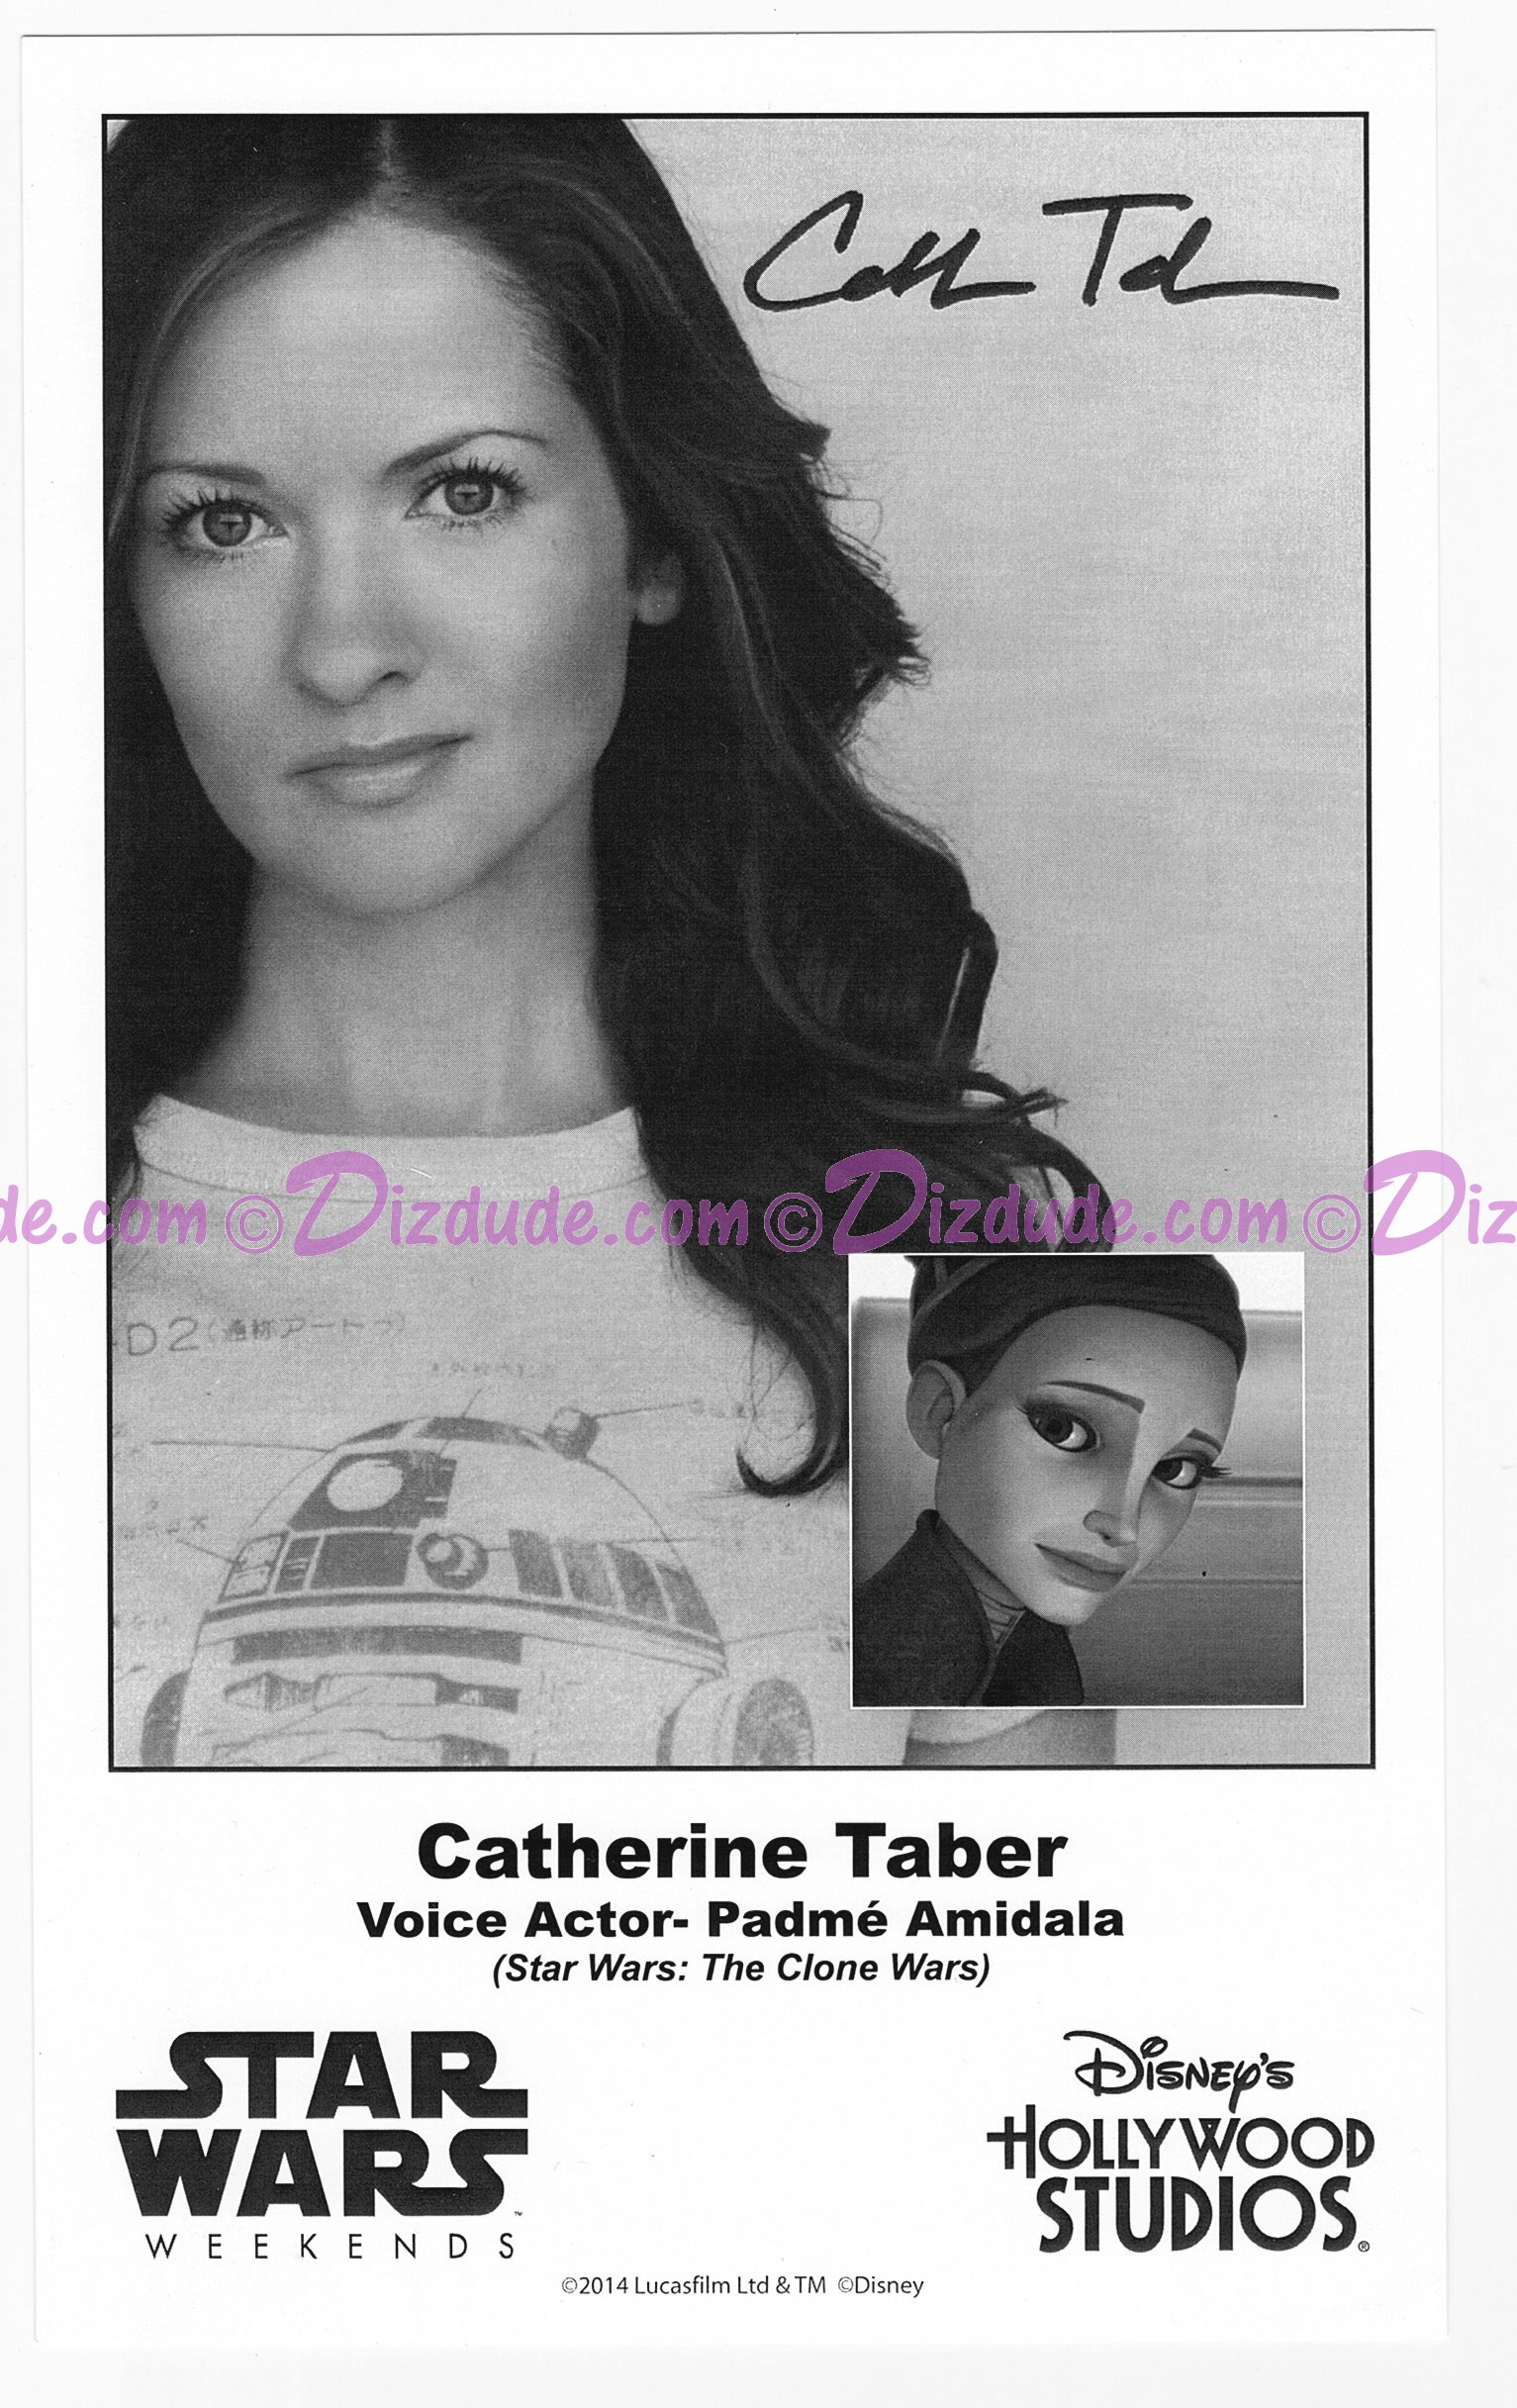 Catherine Taber the voice of Padme Amidala Presigned Official Star Wars Weekends 2014 Celebrity Collector Photo © Dizdude.com